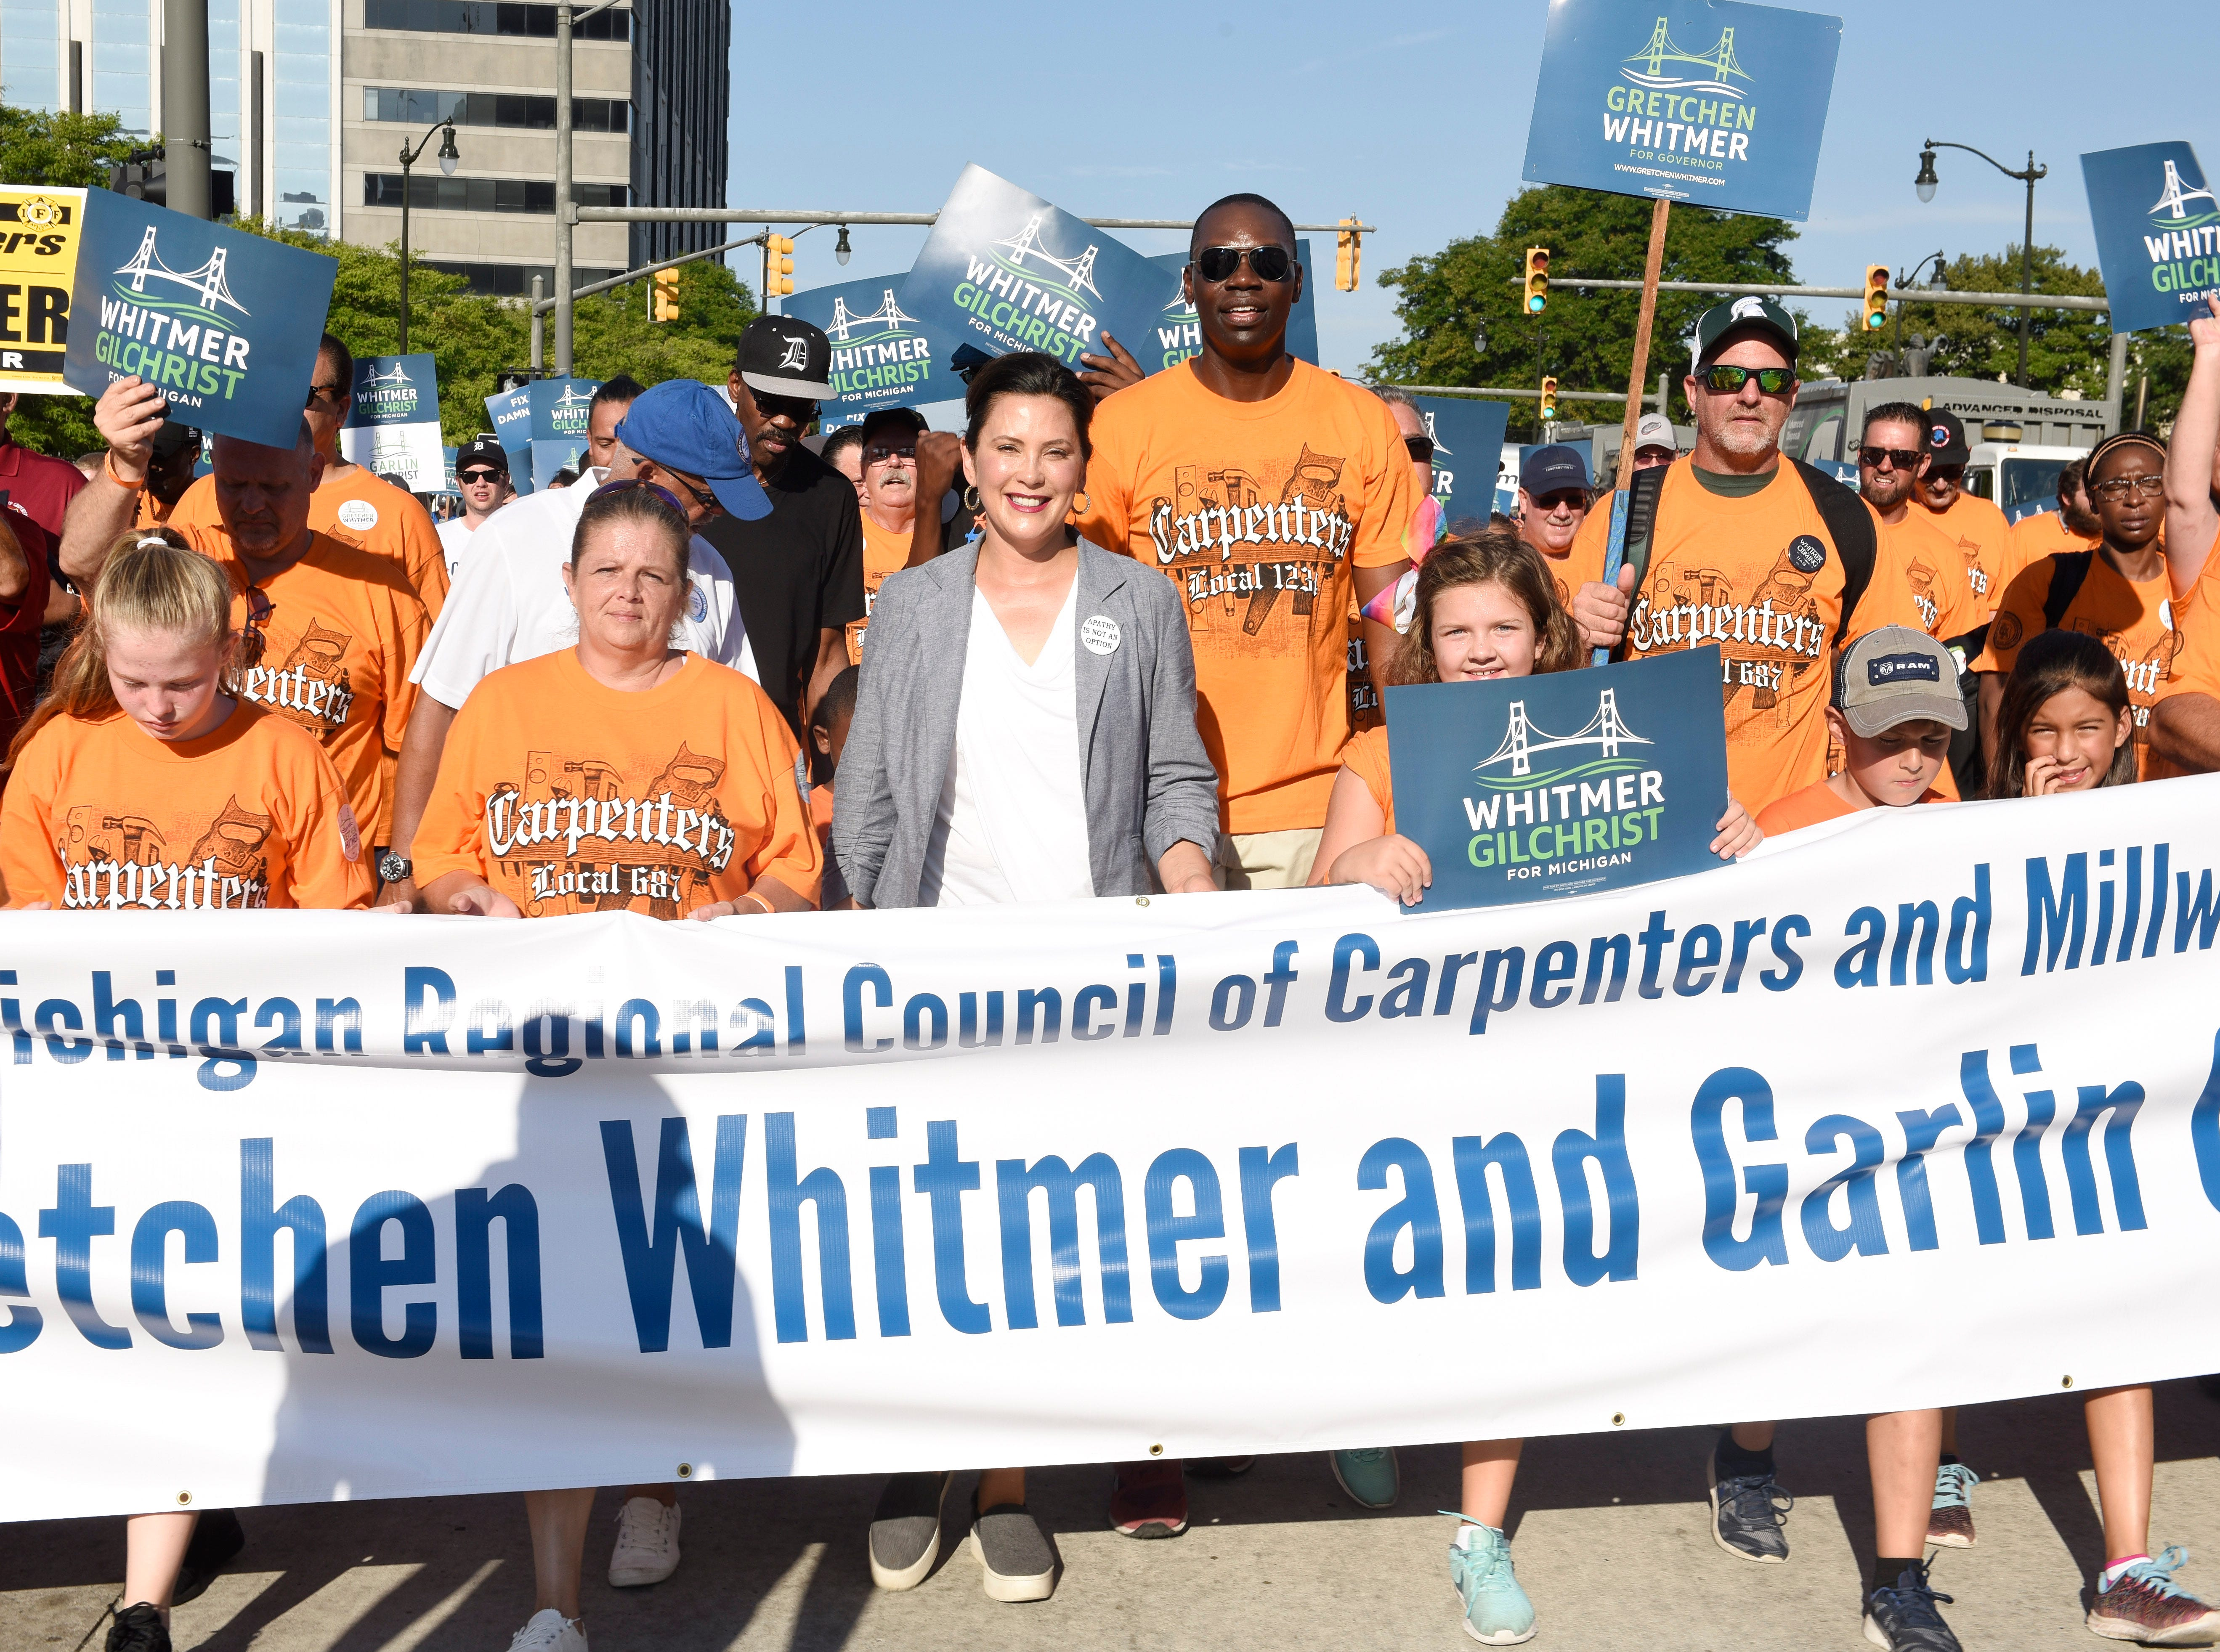 Democratic nominee for governor Gretchen Whitmer, center, walks the parade route with the Michigan Regional Council of Carpenters and Millwrights.